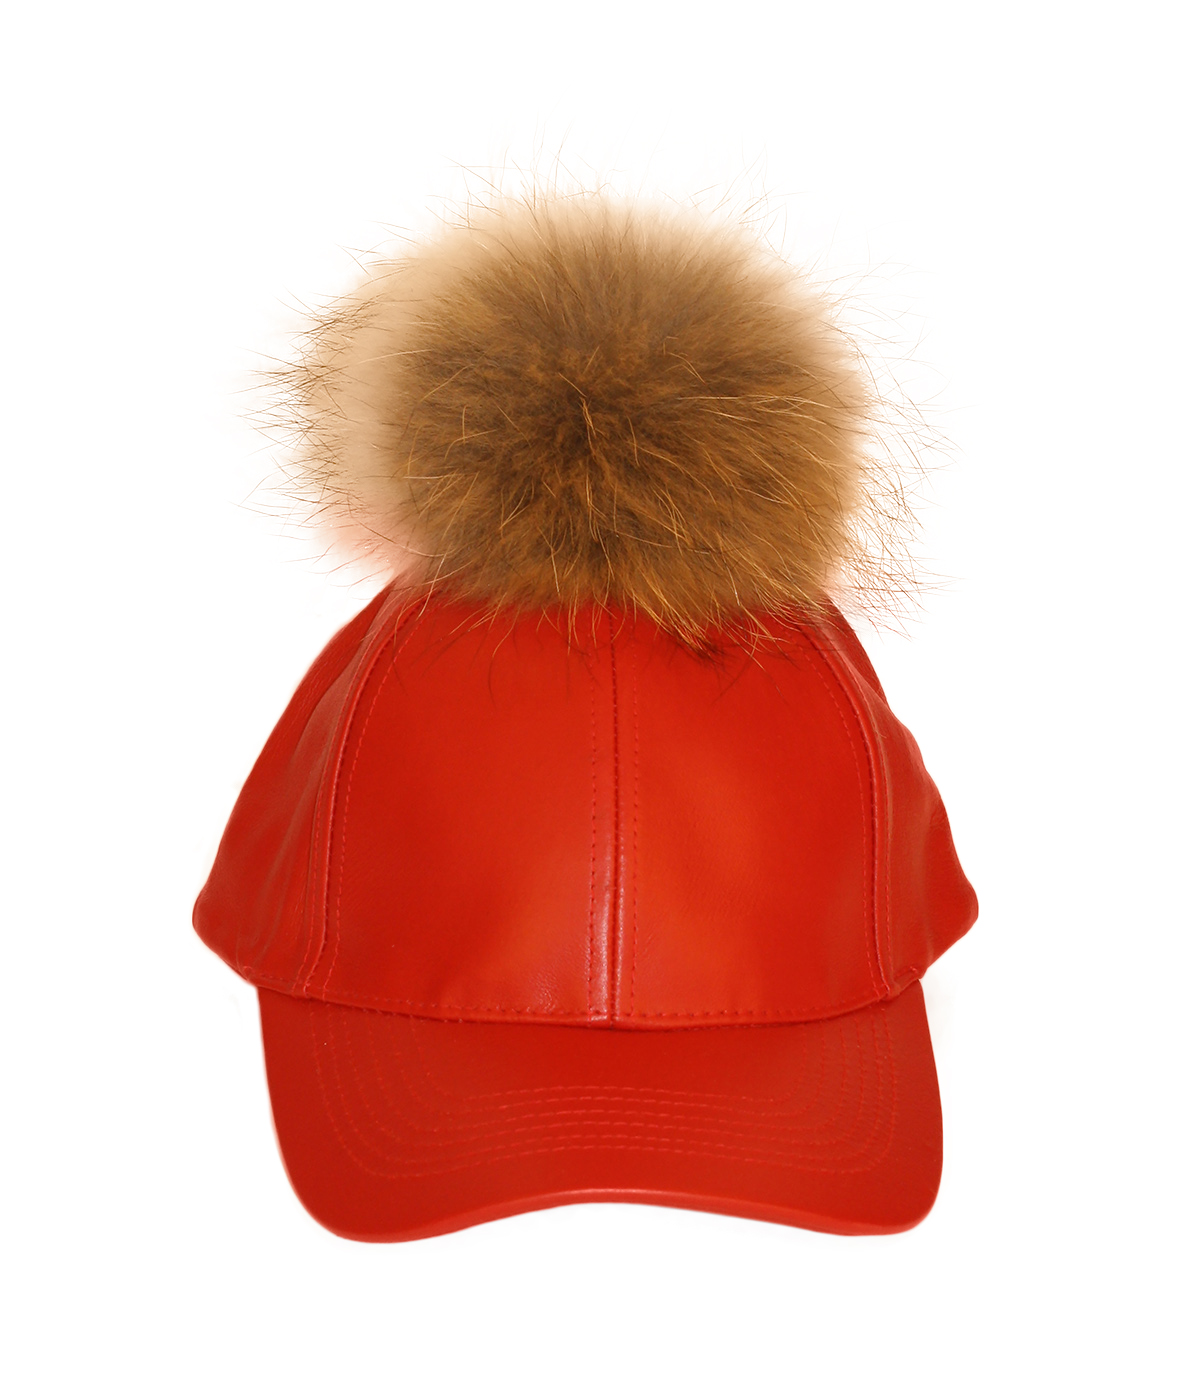 Red leather fur pom cap front view